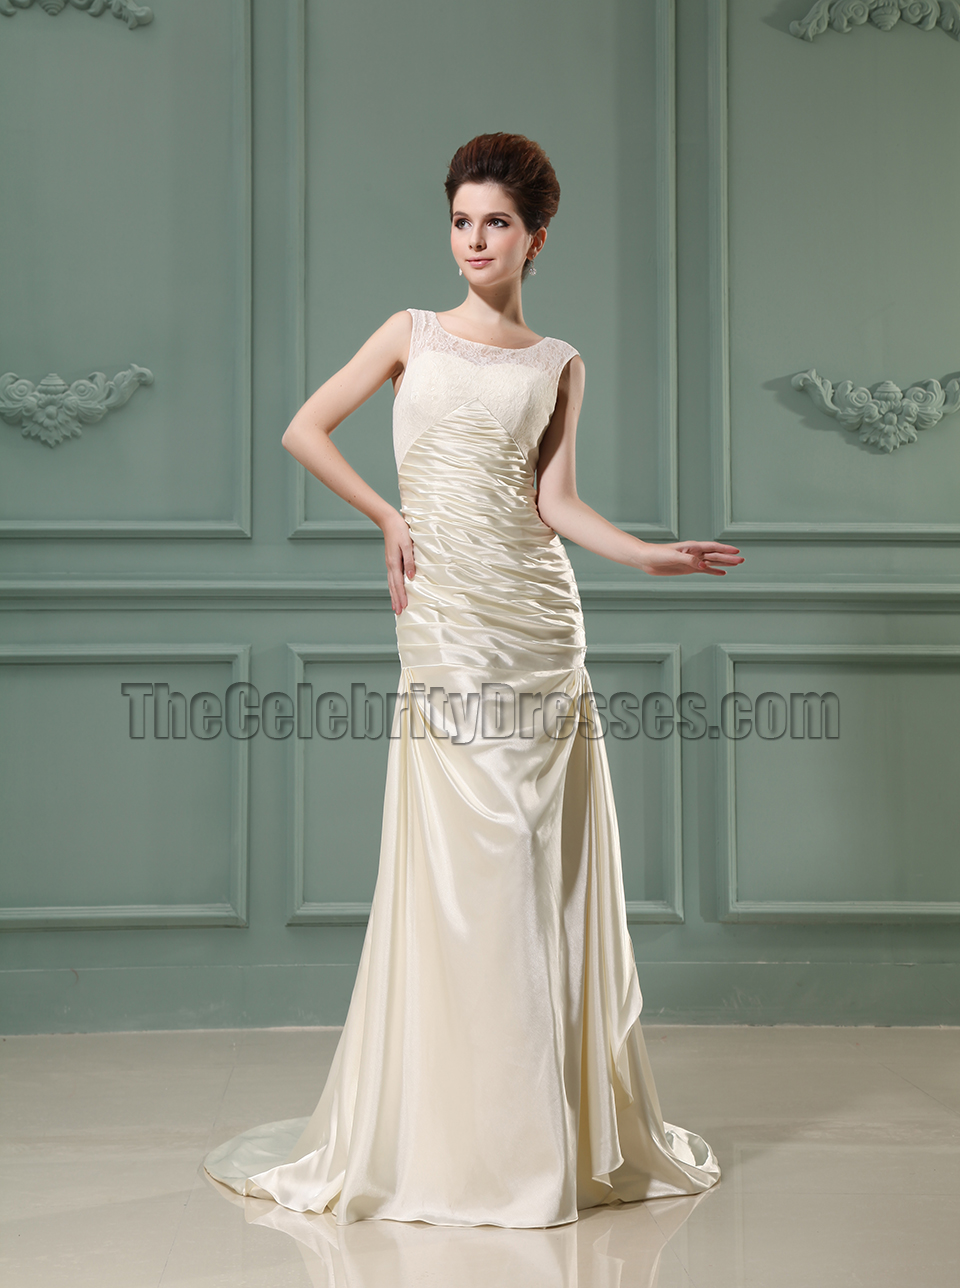 Sheath Column Ivory Long Prom Dress Evening Gowns - TheCelebrityDresses